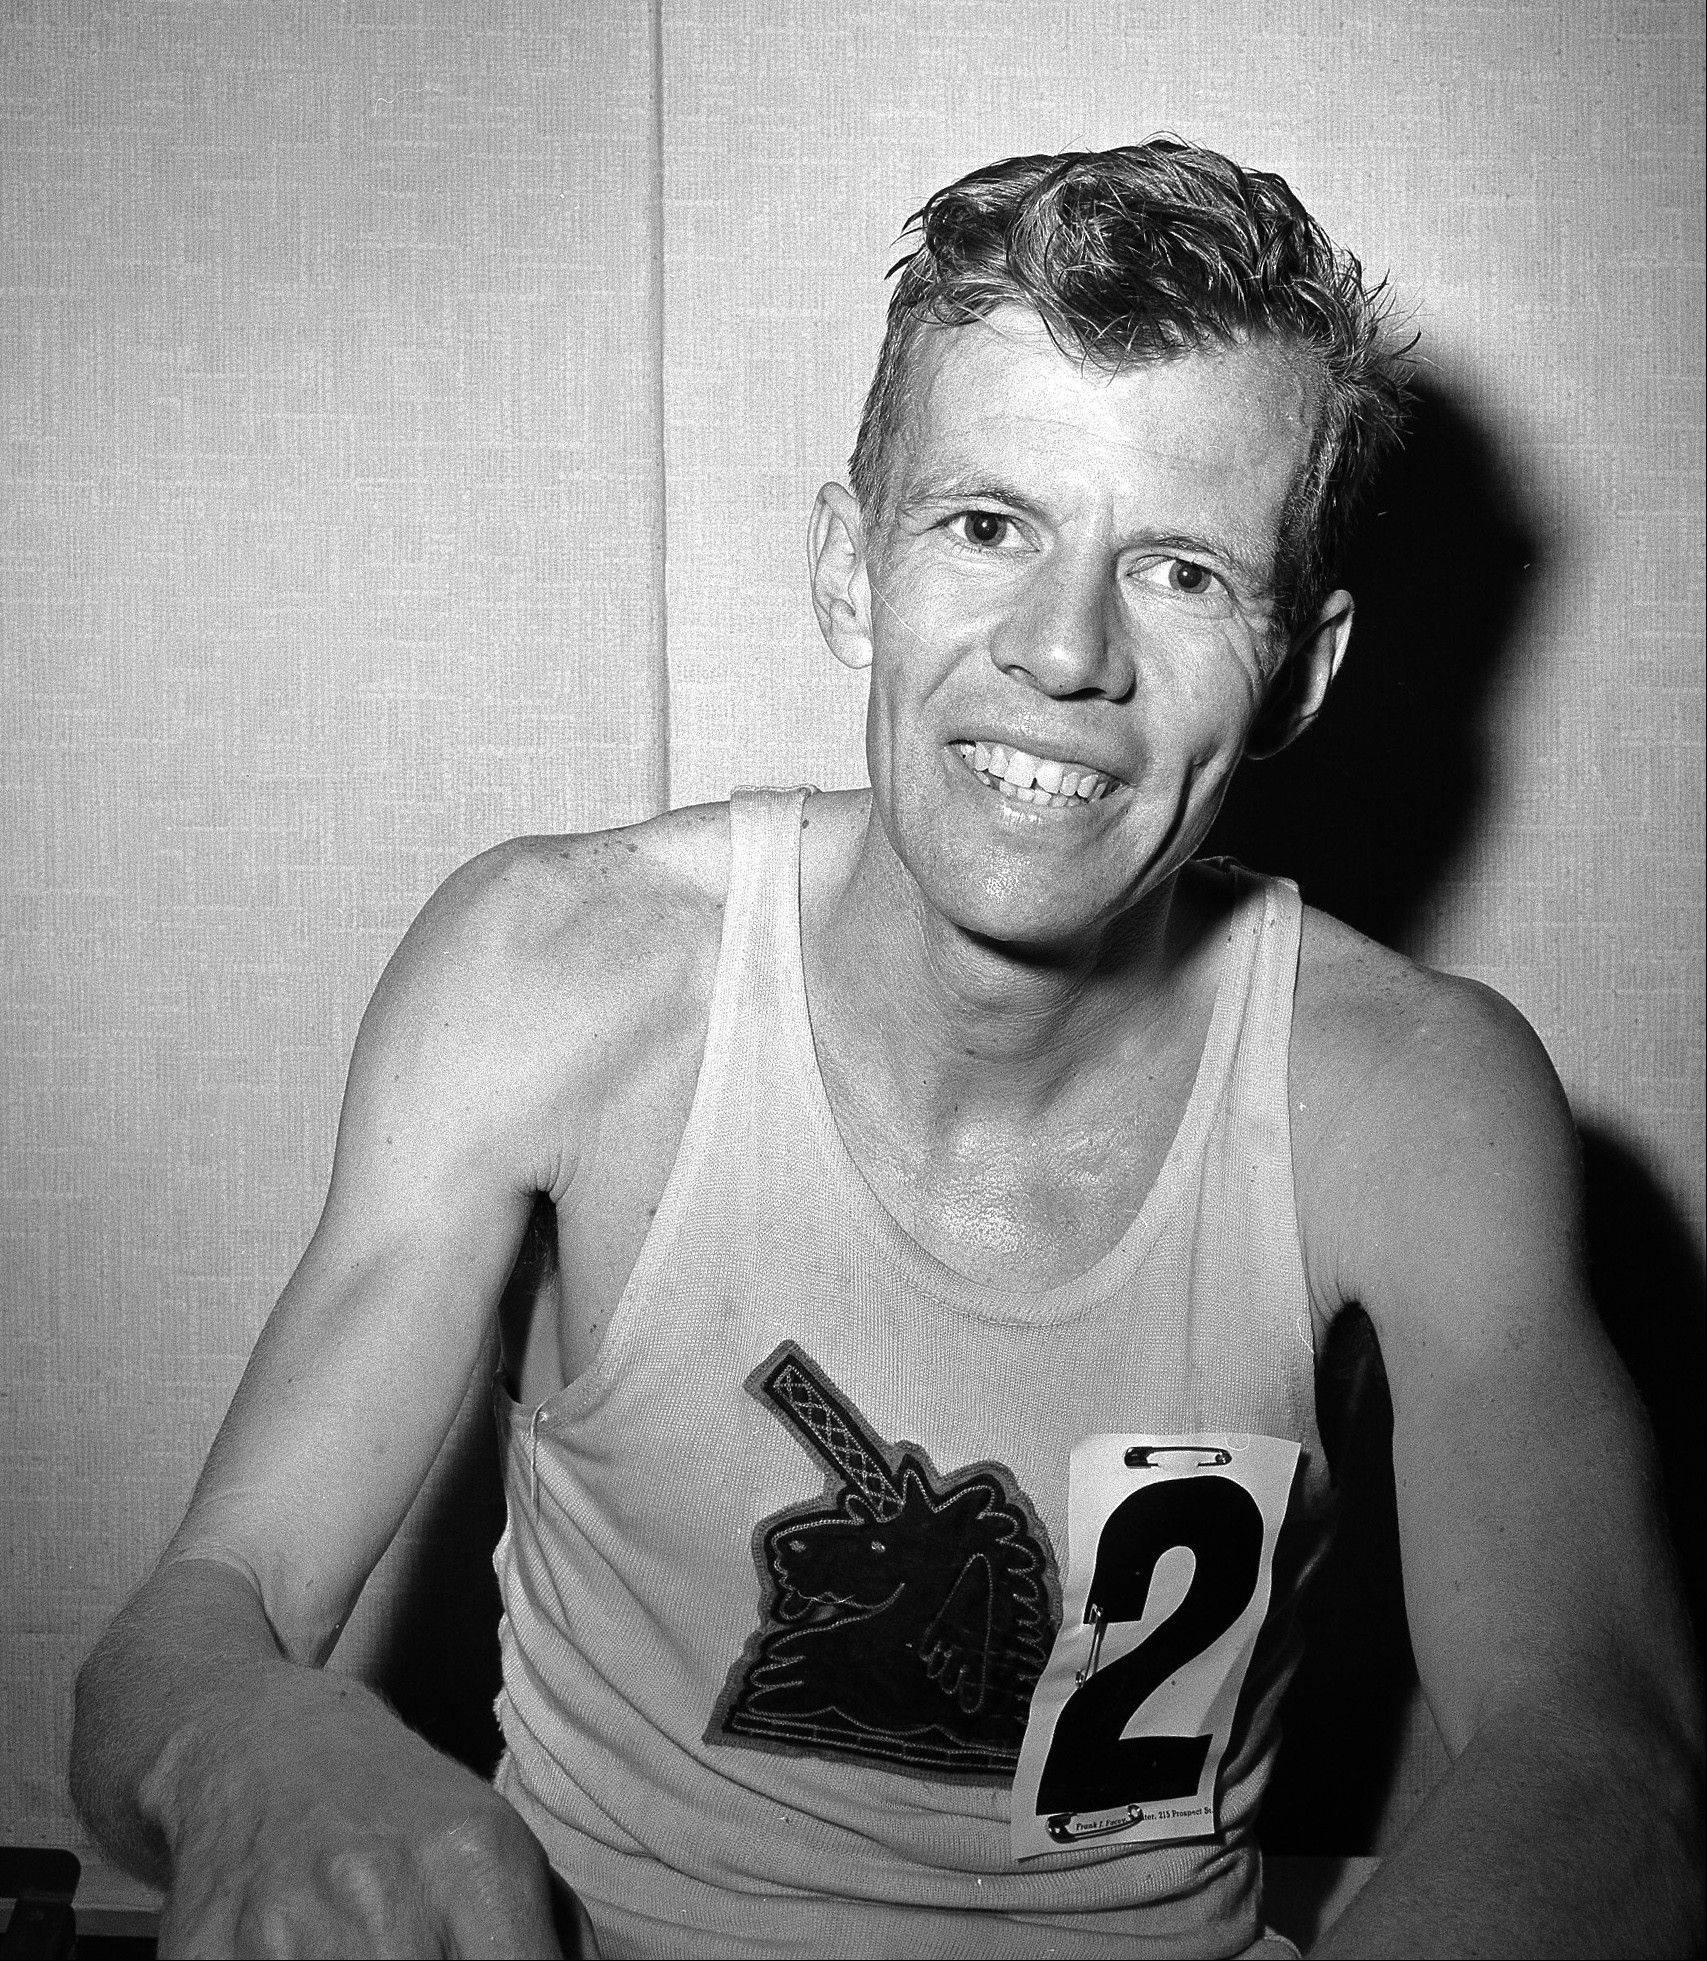 John J. Kelley sits in his dressing room after finishing fourth in the Boston Marathon in Boston. Kelley, winner of the 1957 Boston Marathon and known to his fans as the first modern American road runner, has died. Amby Burfoot, a friend whom Kelley coached in high school in Groton in the early 1960s, confirmed his death. He said Kelley died Sunday, Aug. 21, 2011, in Stonington, Conn., at his daughter�s home from a melanoma that spread to his lungs. He was 80.